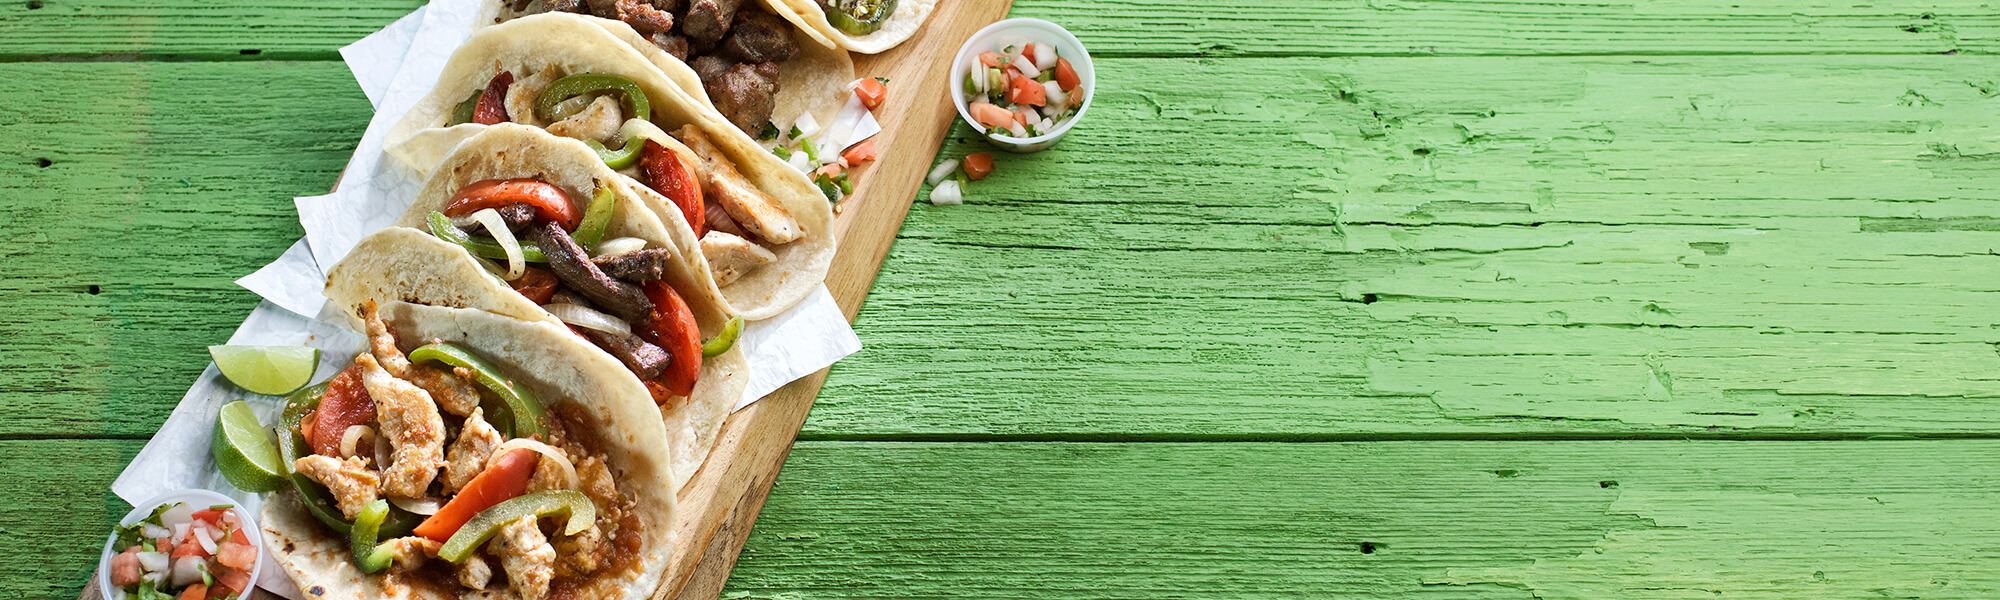 Lunch and Dinner Tacos on Wooden Board